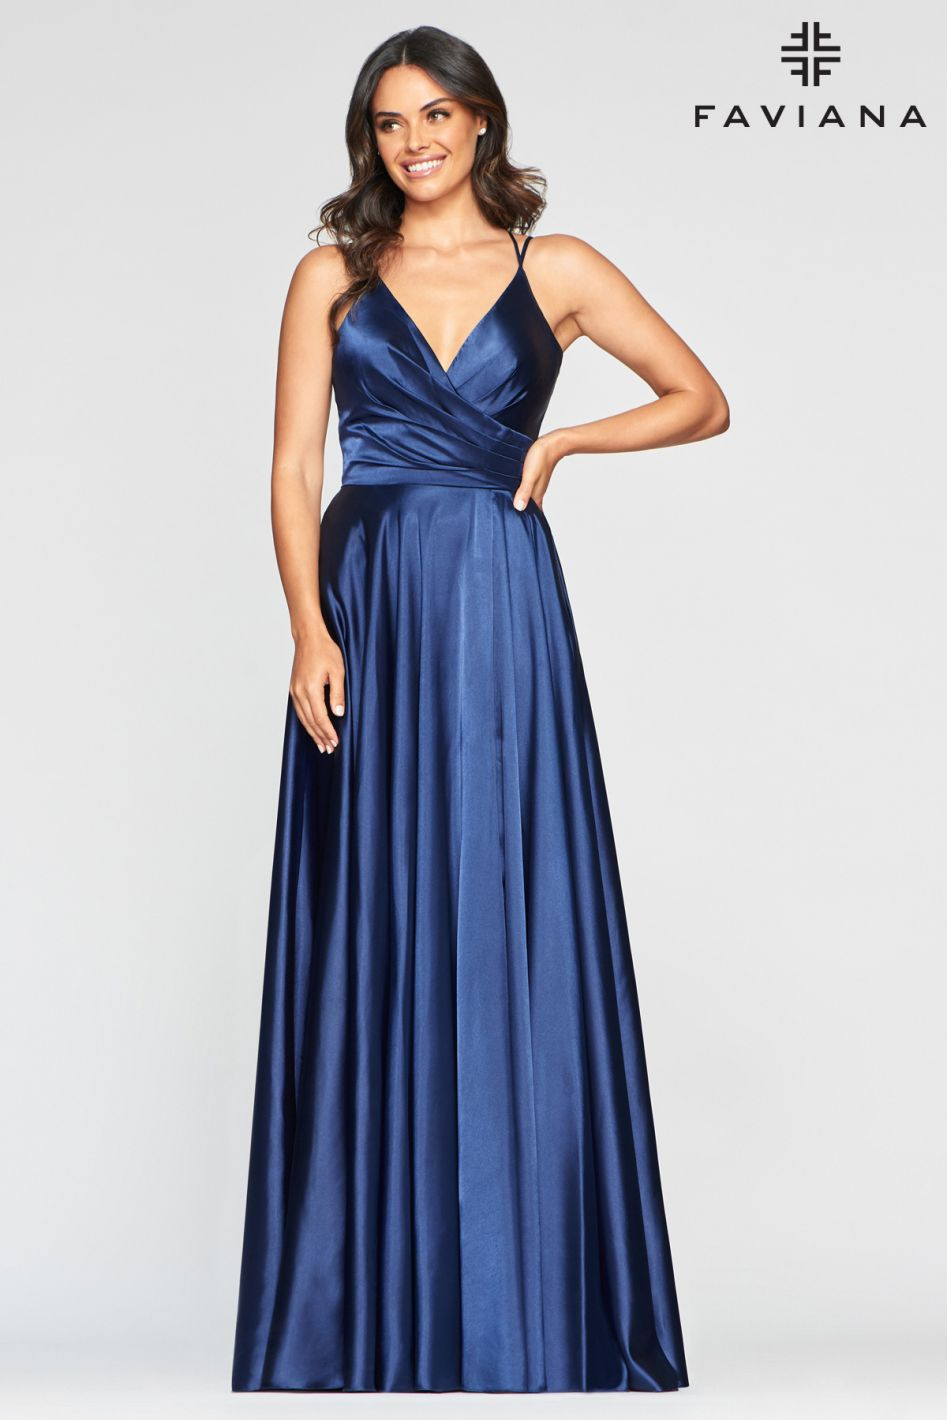 FAVIANA PROM DRESS #s10429